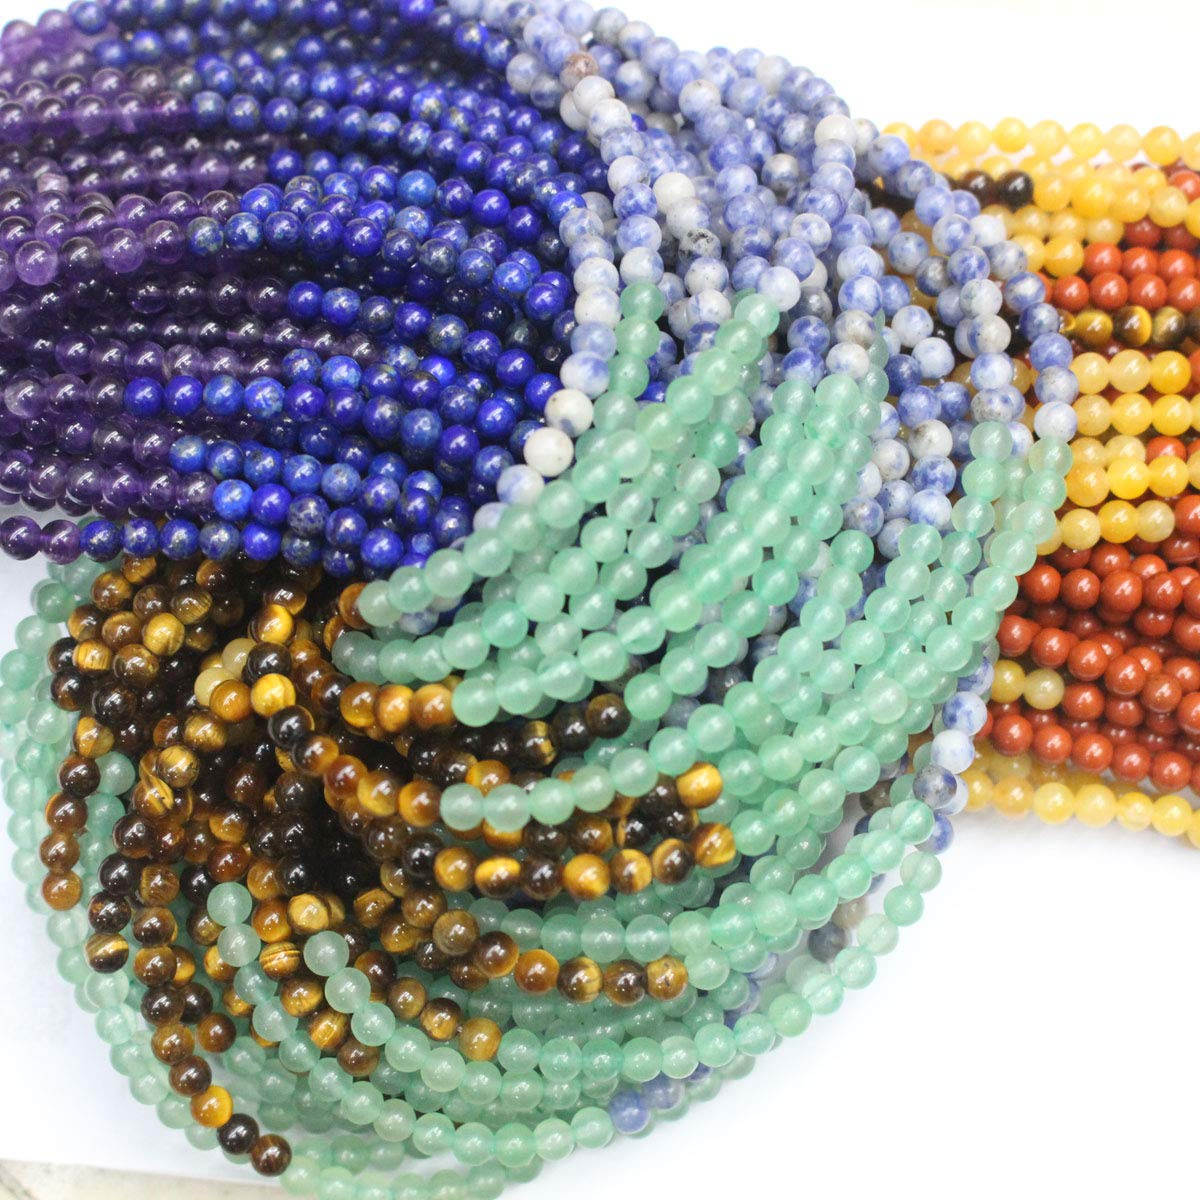 Natural Gemstone Beads 6mm Lapis Lazuli Amethyst Yellow Jade Red Jasper Round Semi Precious Beads for DIY Jewerly Making Beads 7 Gemstone Beads, 6mm